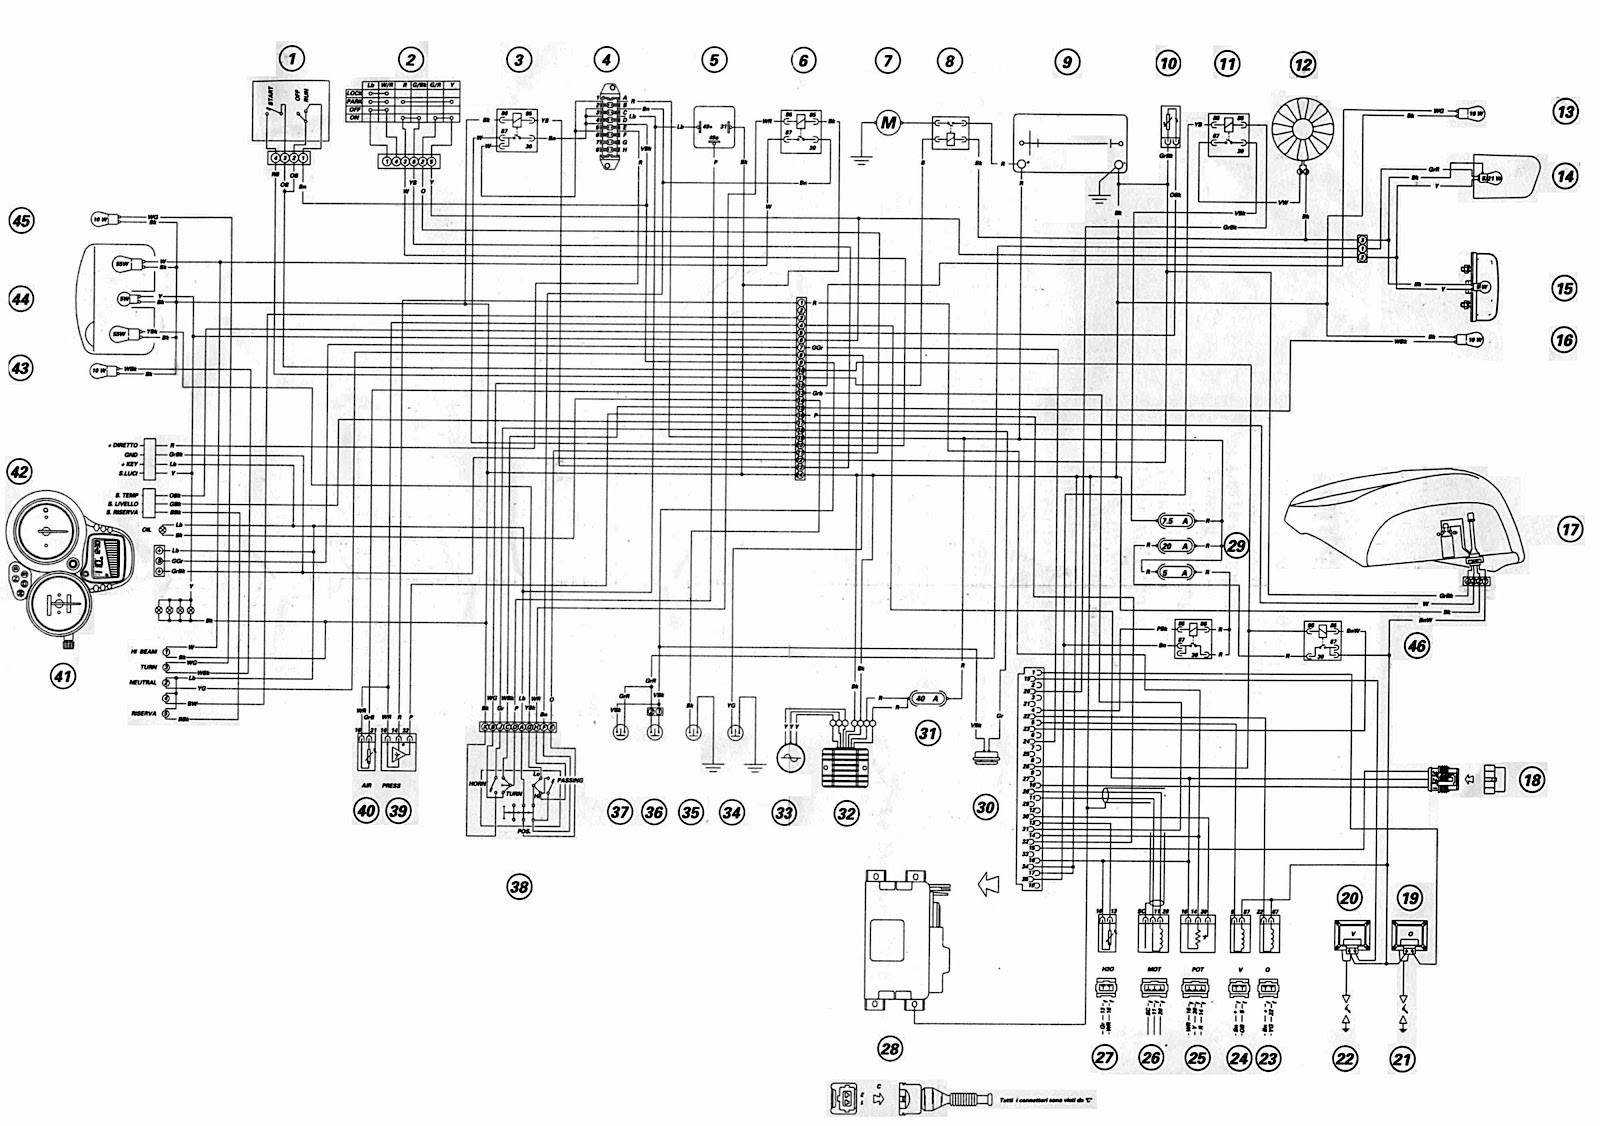 ducati st4 2002 motorcycle wiring diagram all about wiring diagrams rh diagramonwiring blogspot com Suzuki Quadrunner Wiring-Diagram Suzuki Wiring Harness Diagram